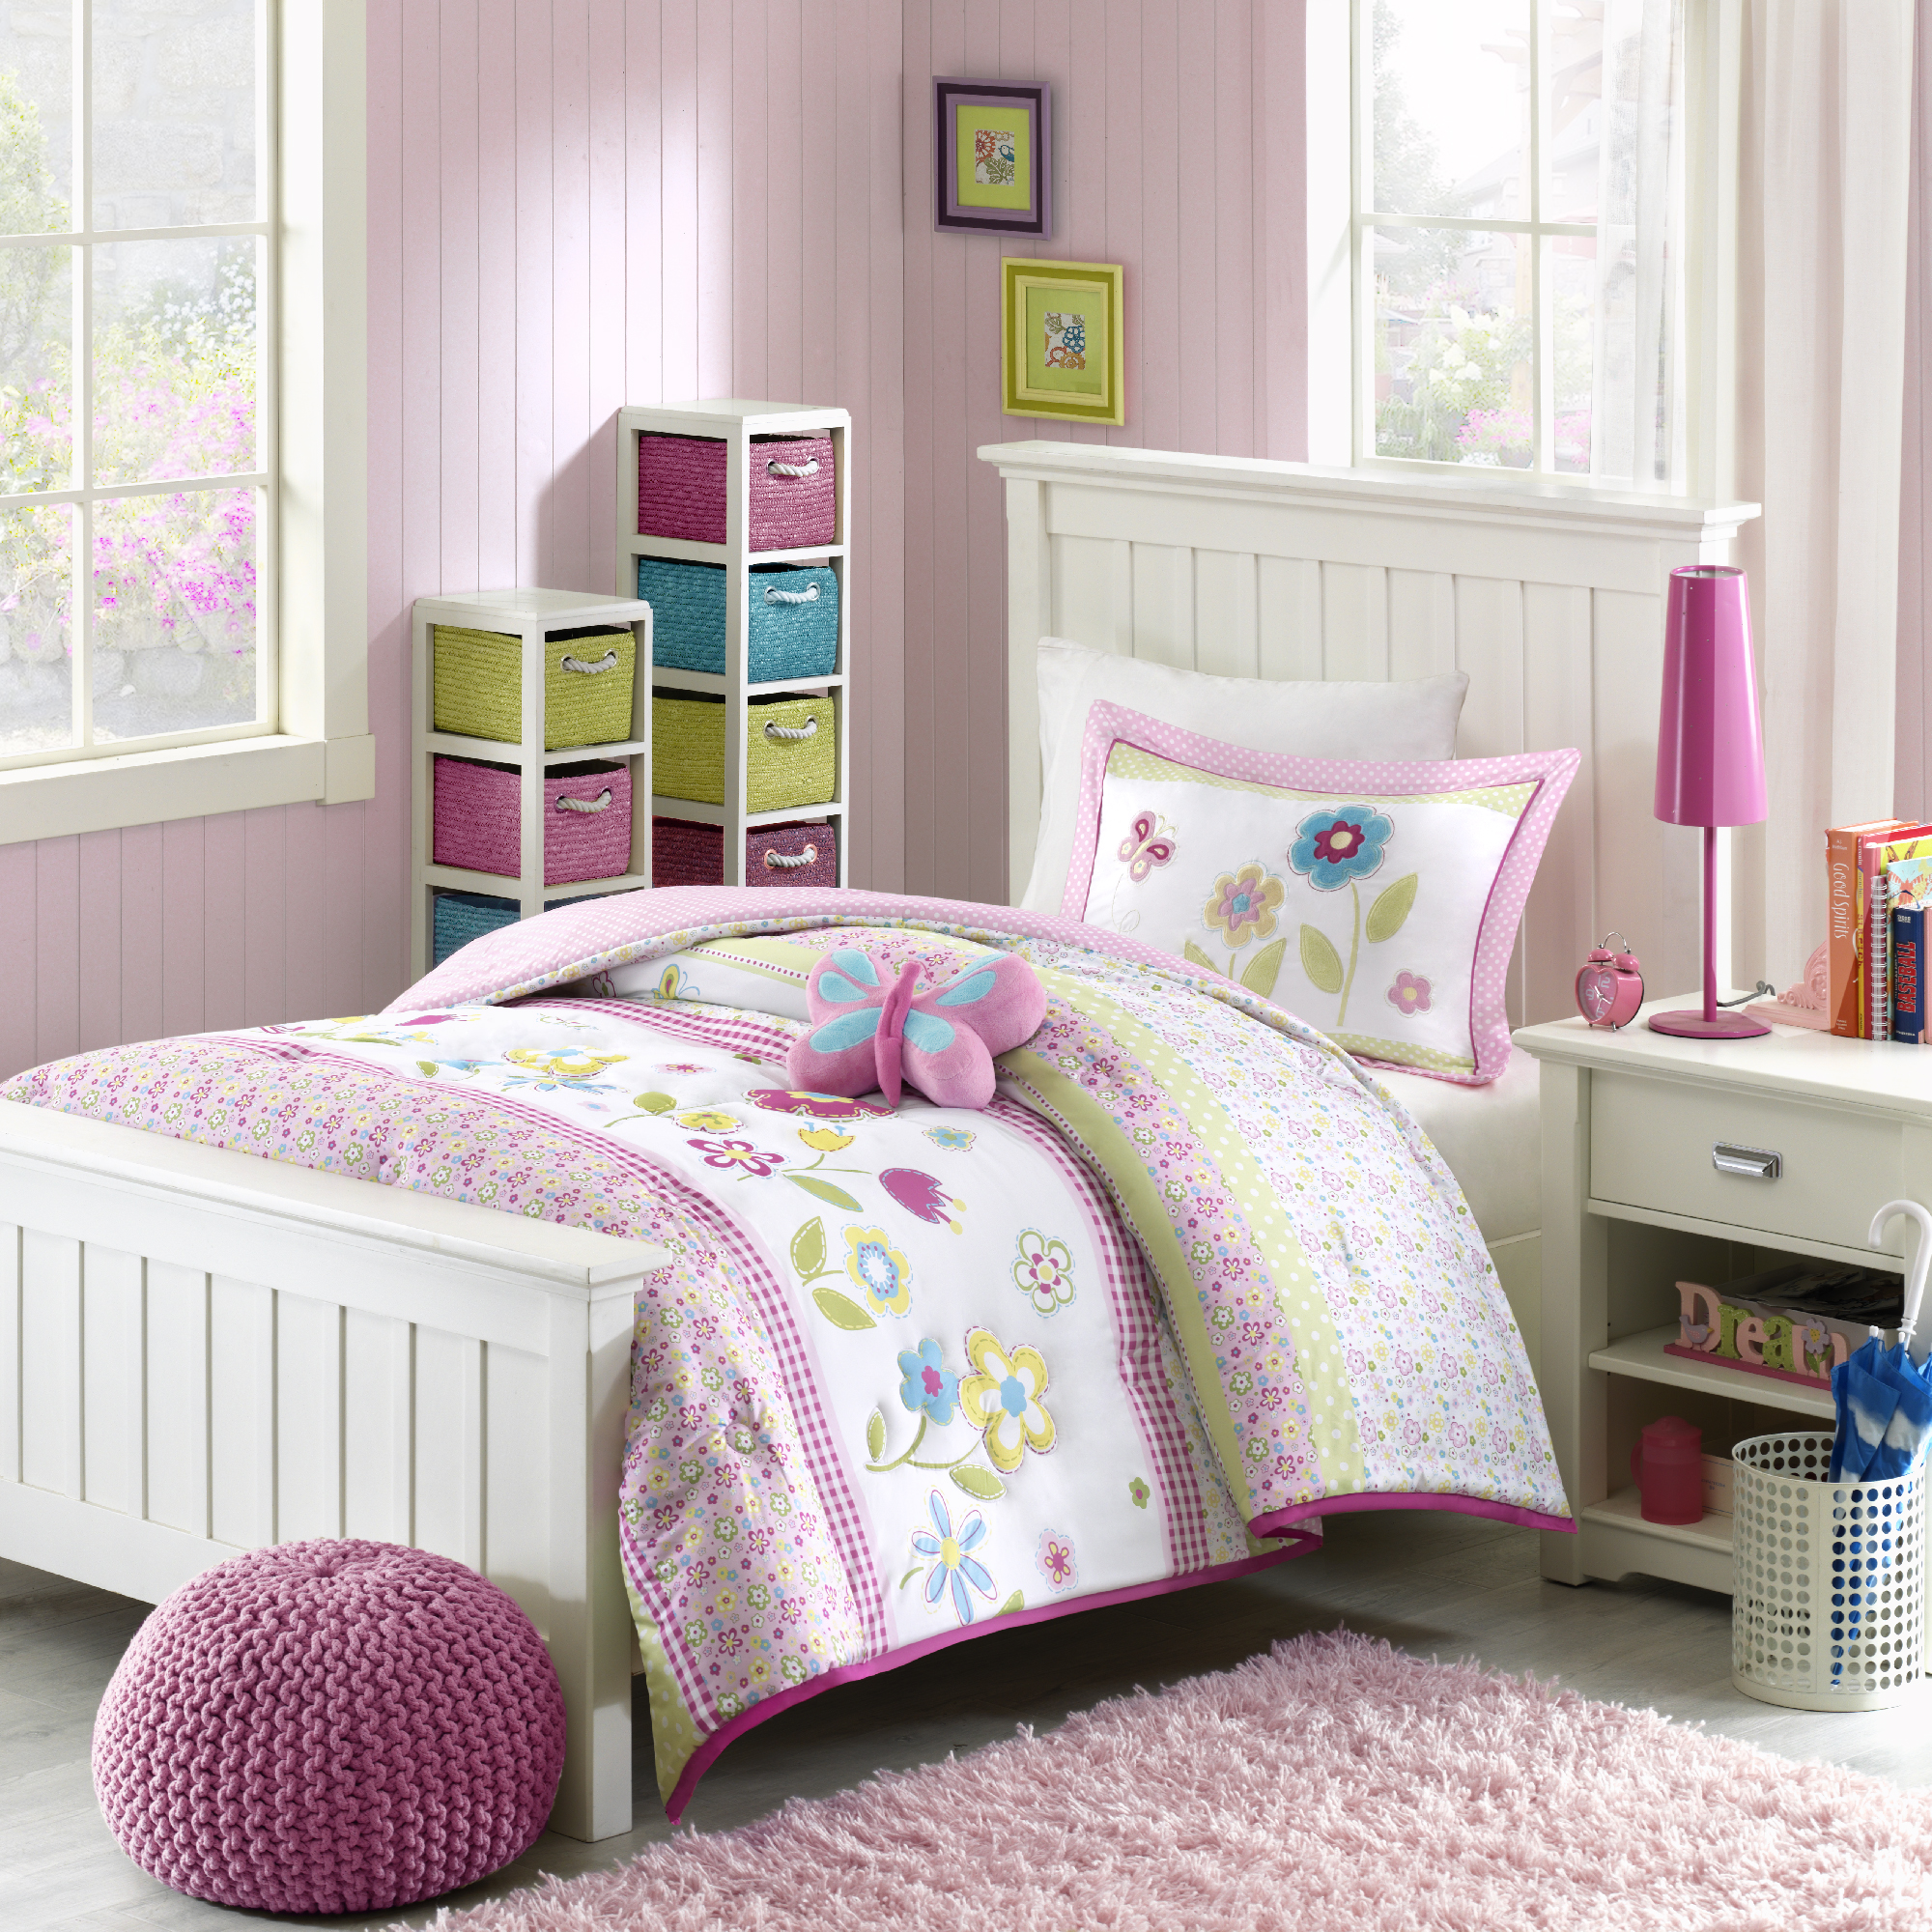 Home Essence Kids Blossoms Printed Bedding Comforter Set by E&E Co. Ltd